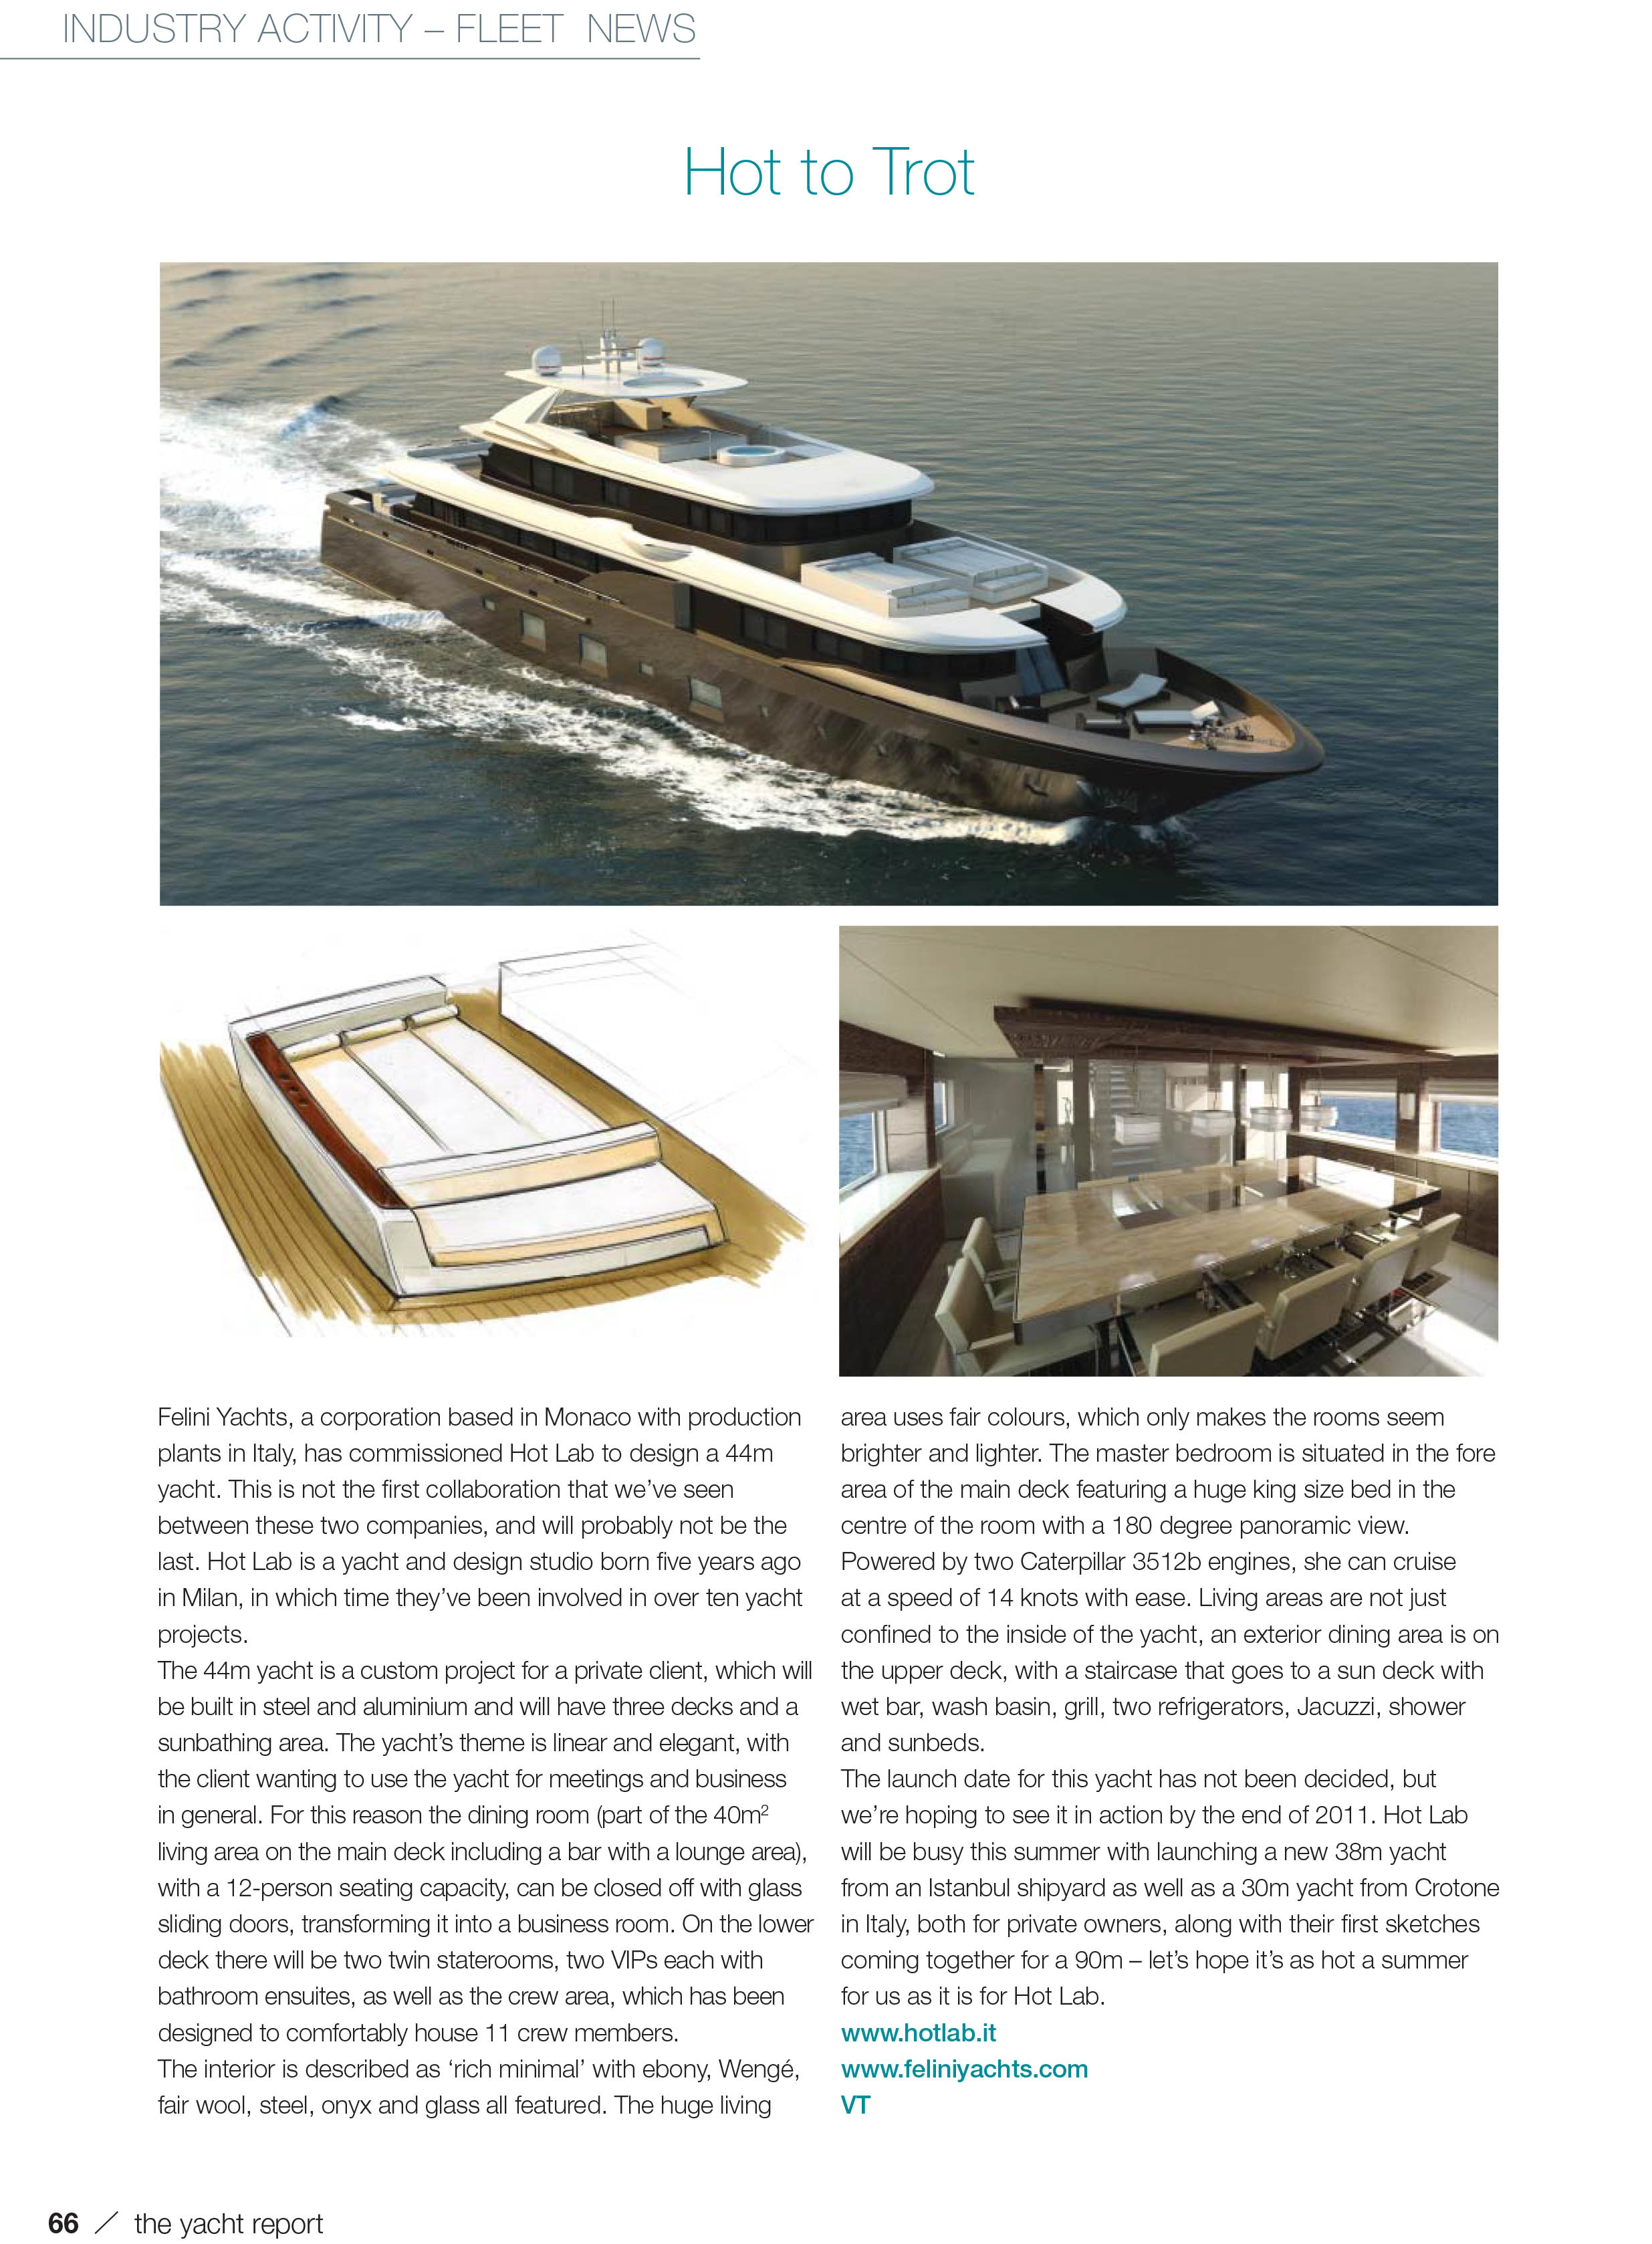 The Yacht Report, issue 103/2009